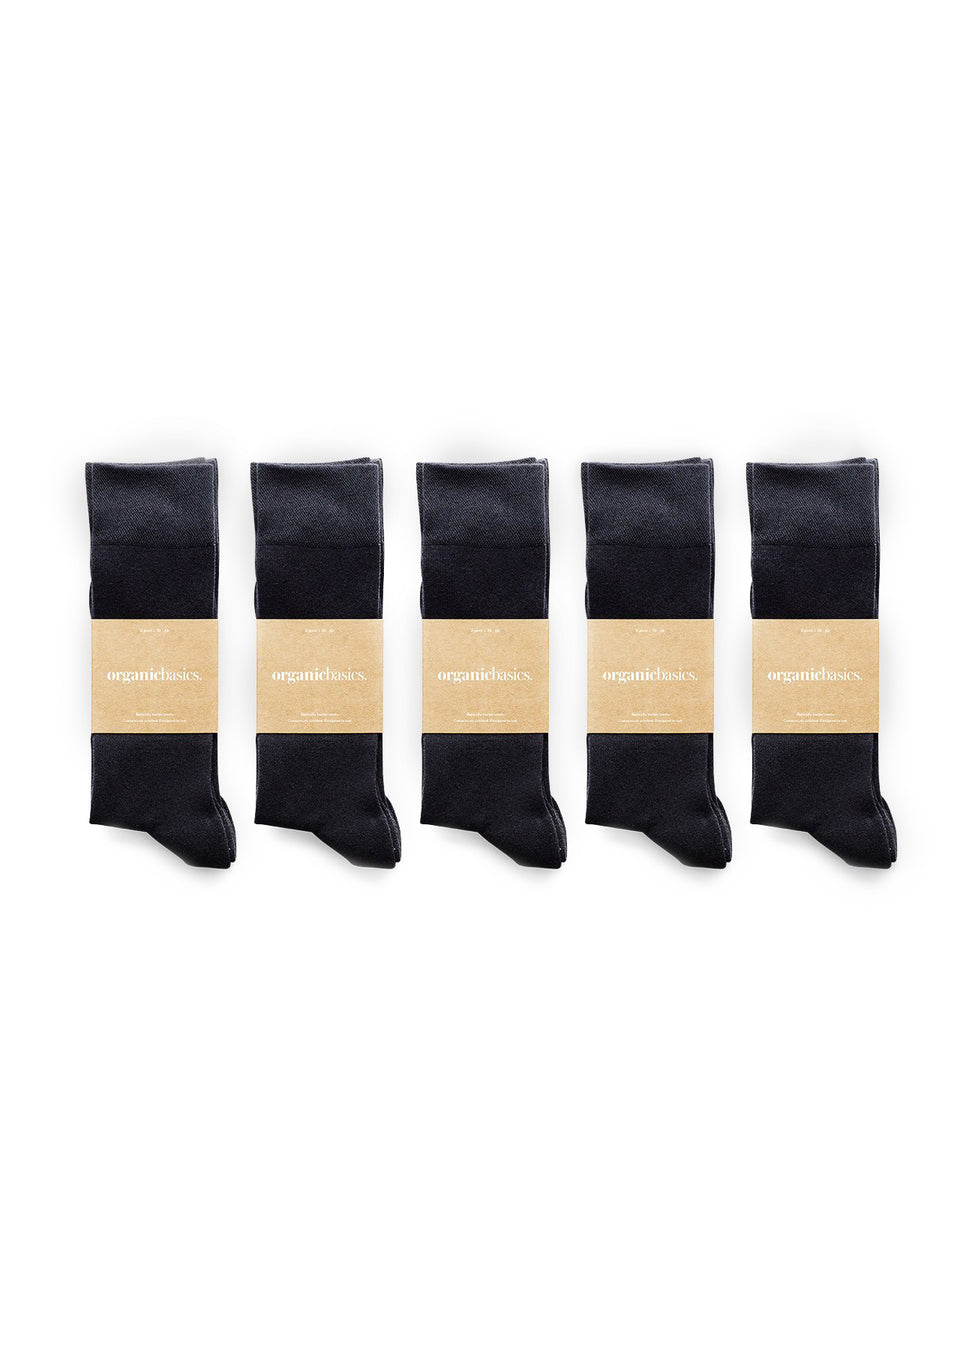 Organic Basics Her Regular Socks 10-pack